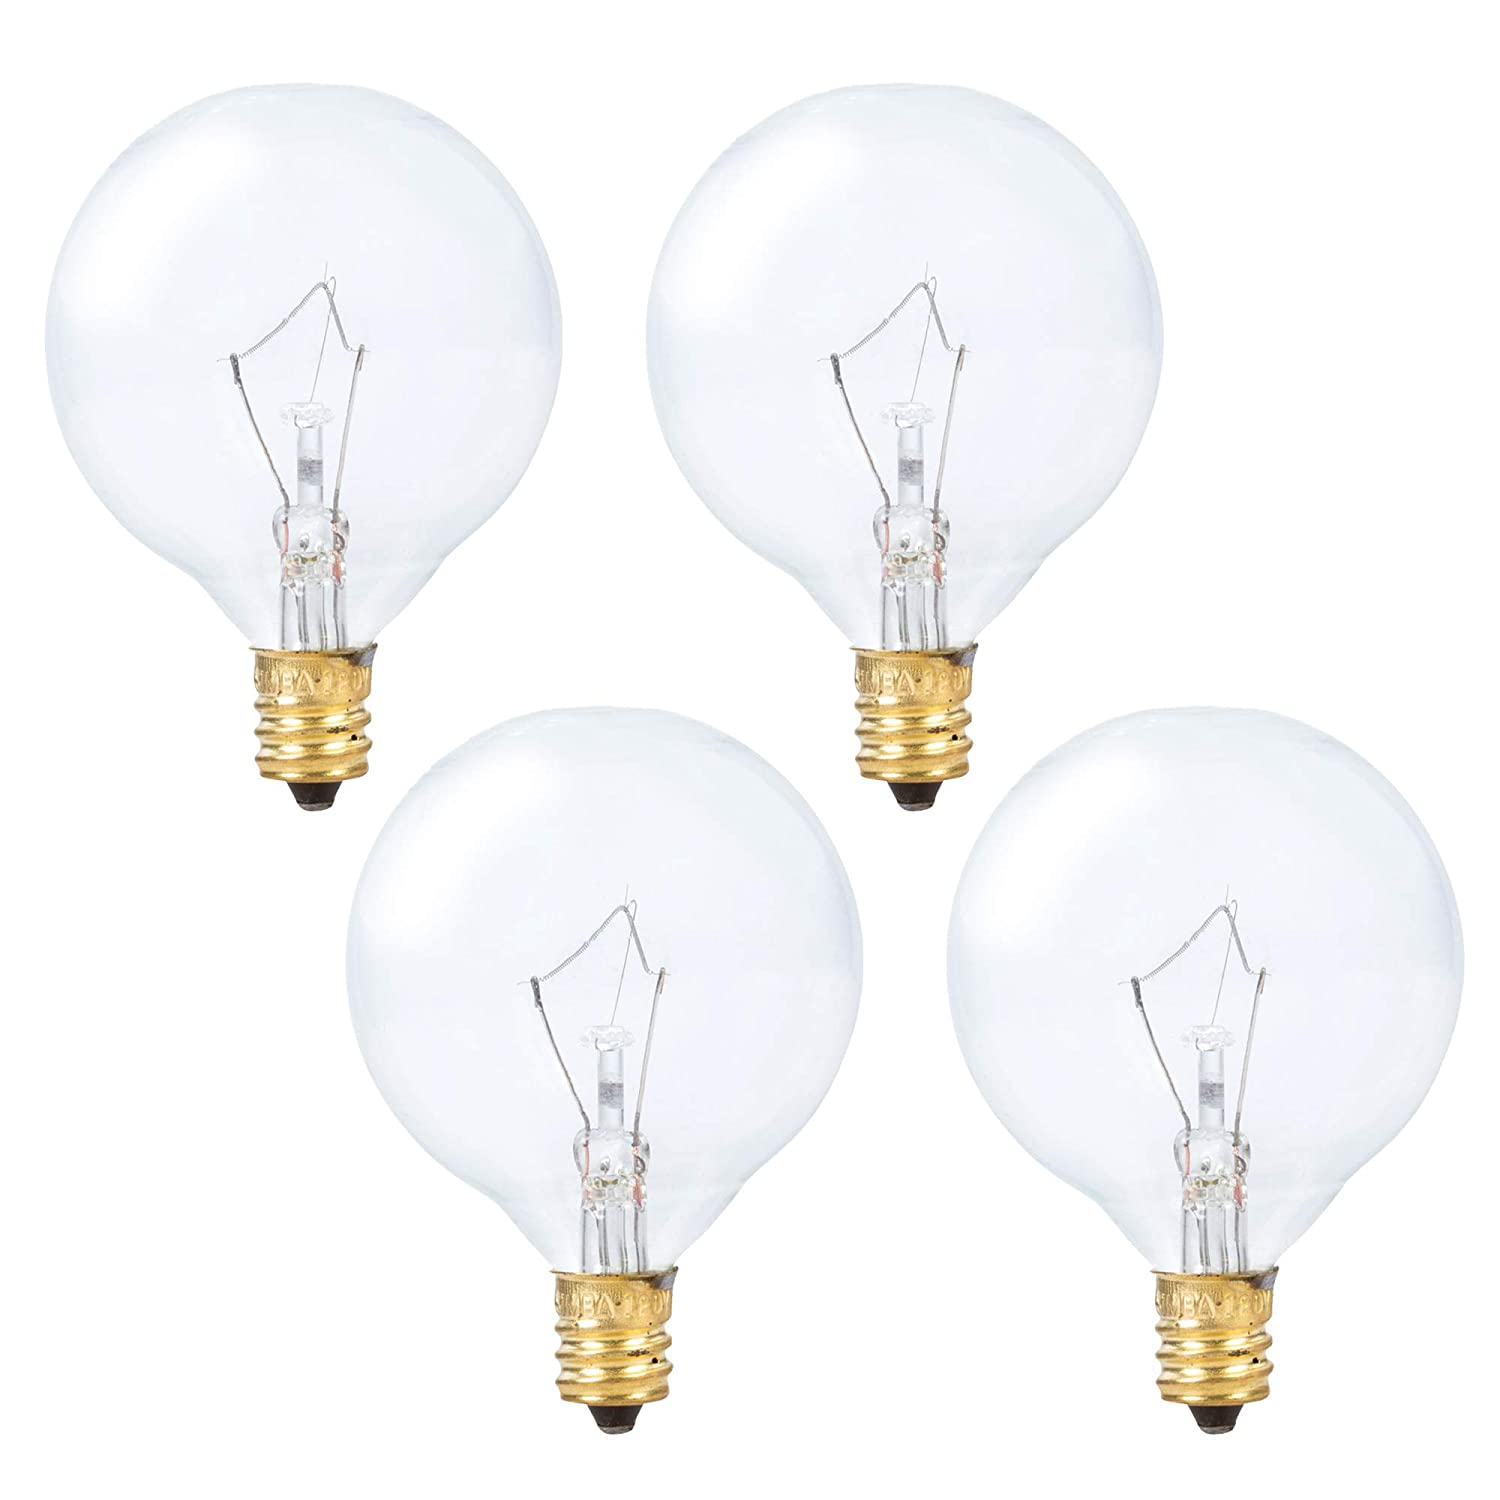 Simba Lighting Scentsy Wax Warmer Small Globe G16.5 Round Bulb 25W E12 Candelabra Base (4 Pack) for Chandelier, Ceiling Fan, Decorative Vanity Lights, Sconce, Clear Glass, 110V 120V, 2700K Warm White